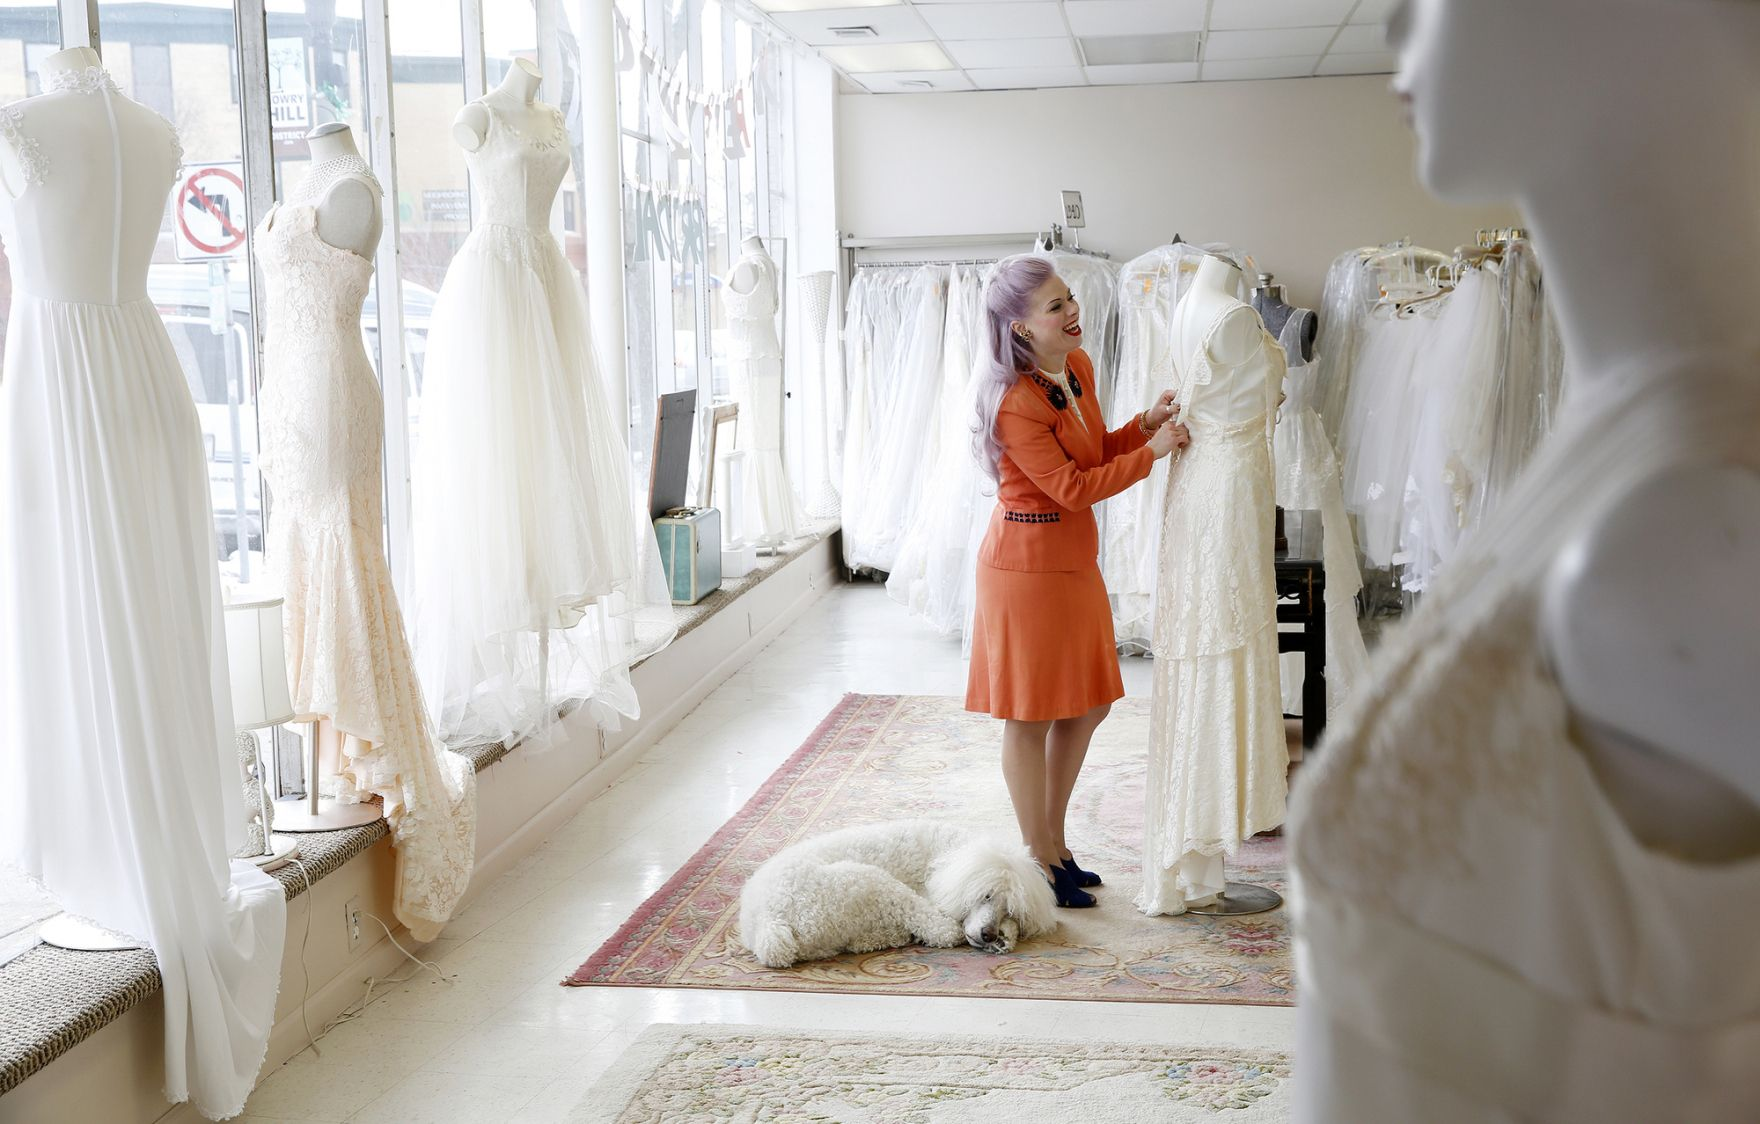 100+ Wedding Dress Stores In Mn - Dresses for Wedding Party Check ...